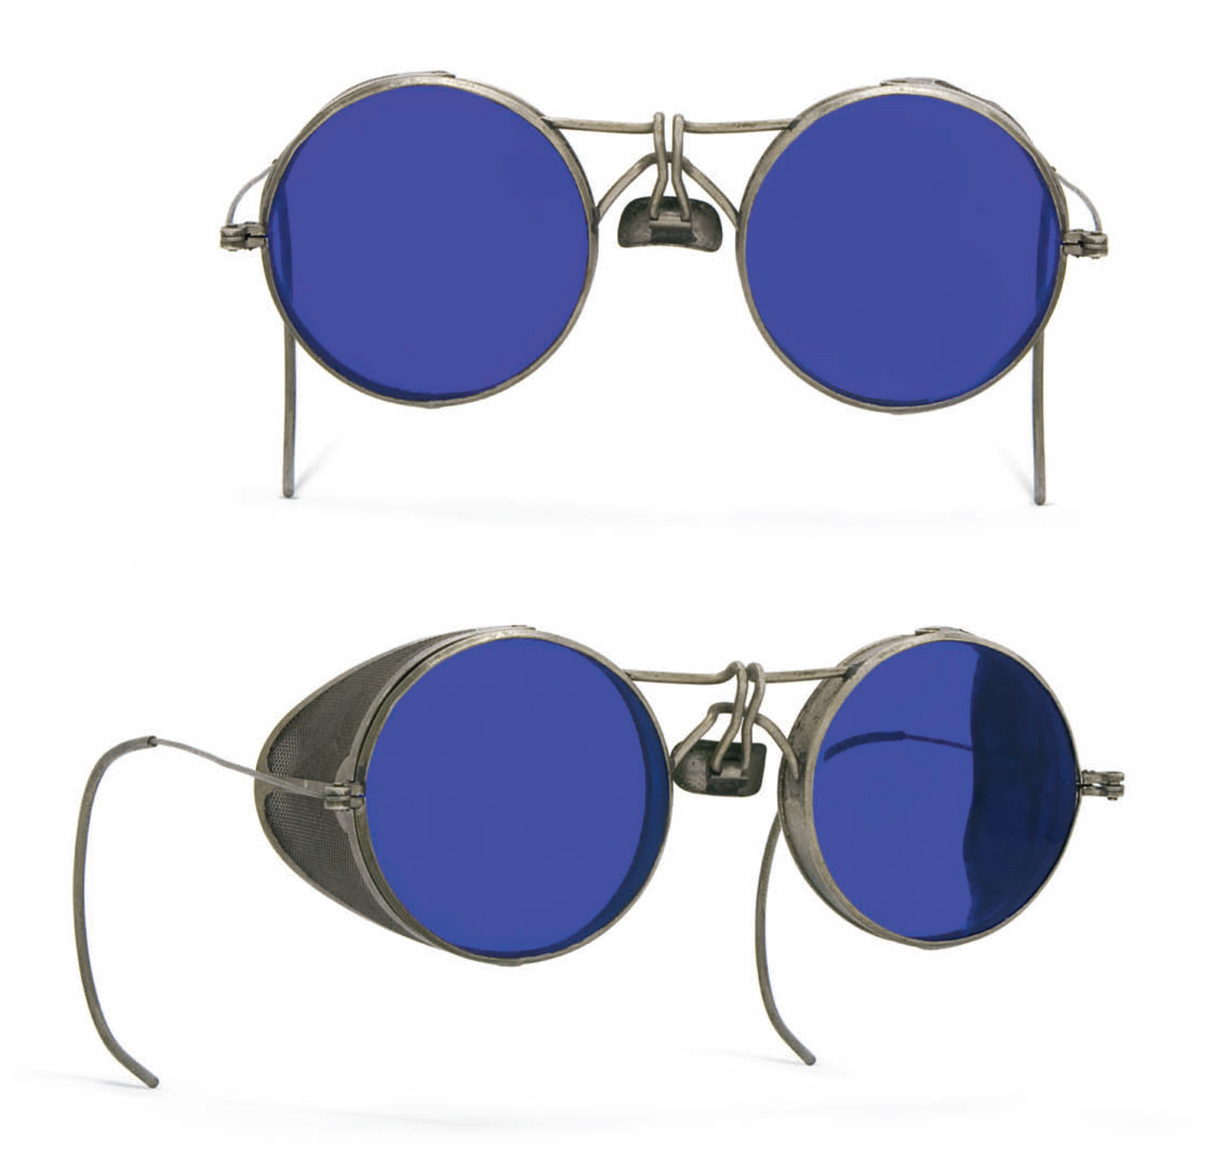 Cobalt lens furnace glasses with unusual bridge, USA circa 1920s